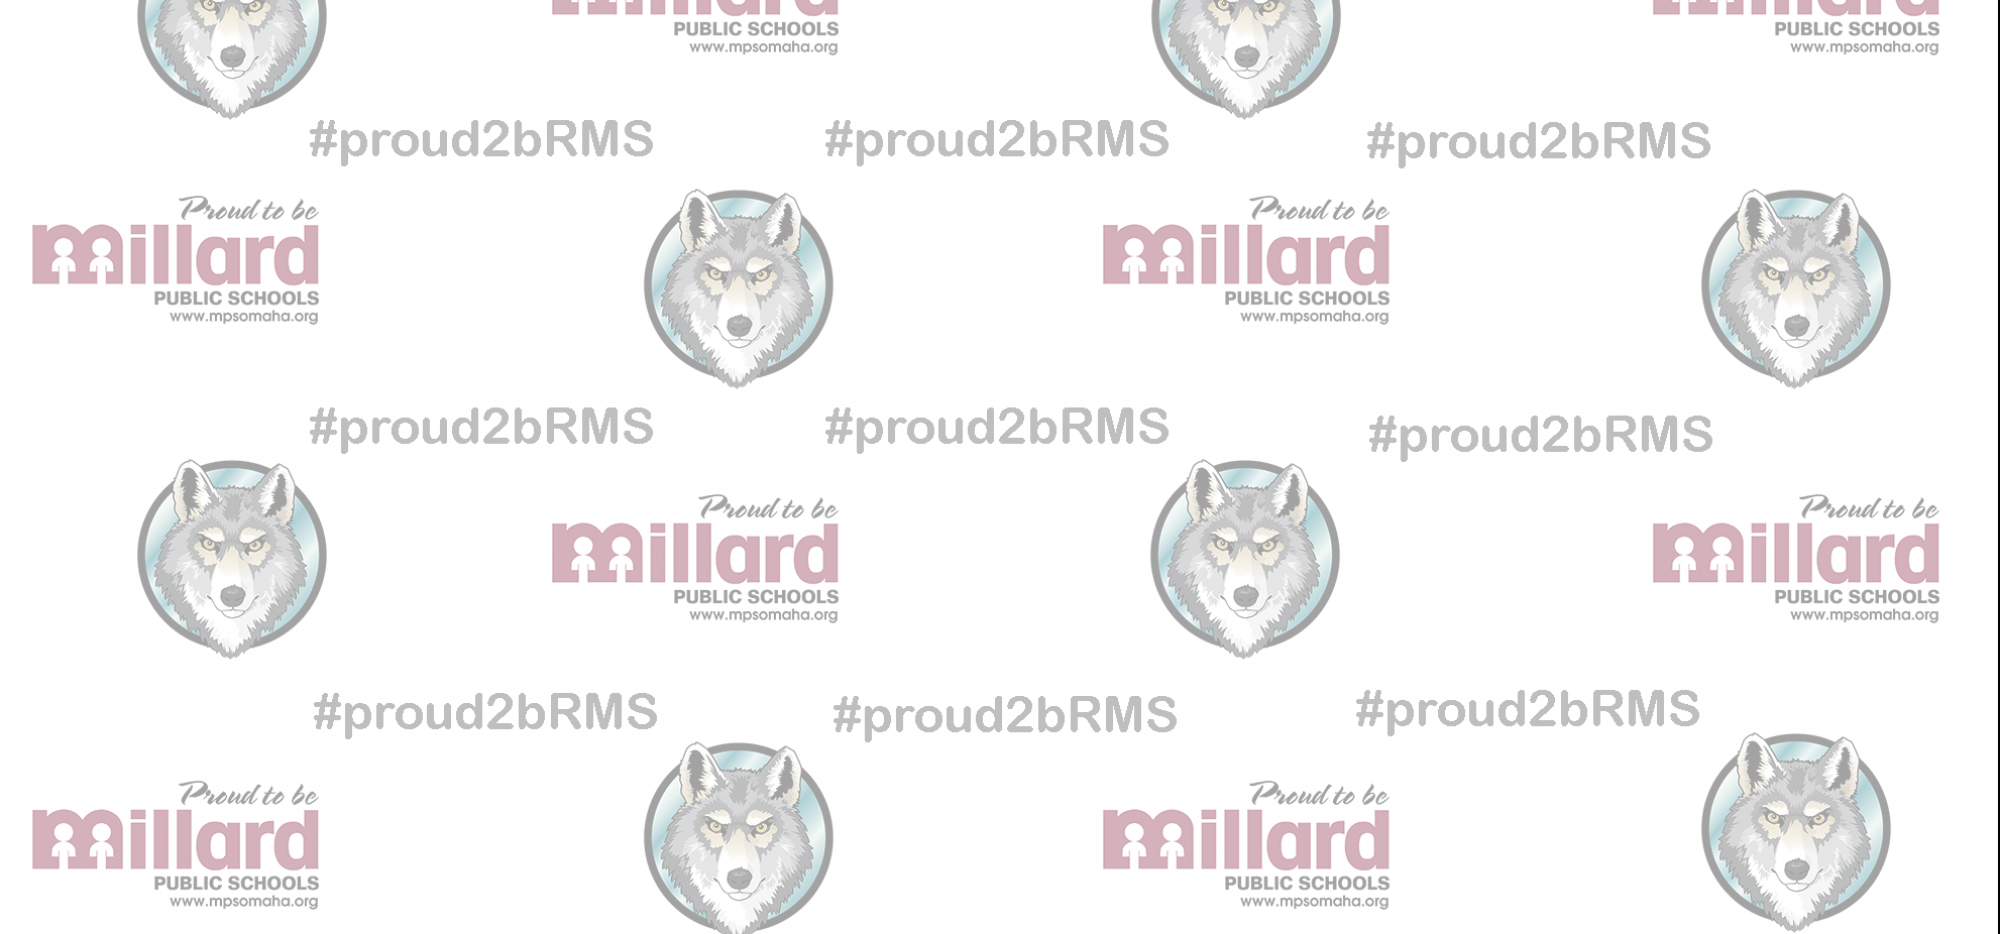 RMS logo and #proud2bRMS